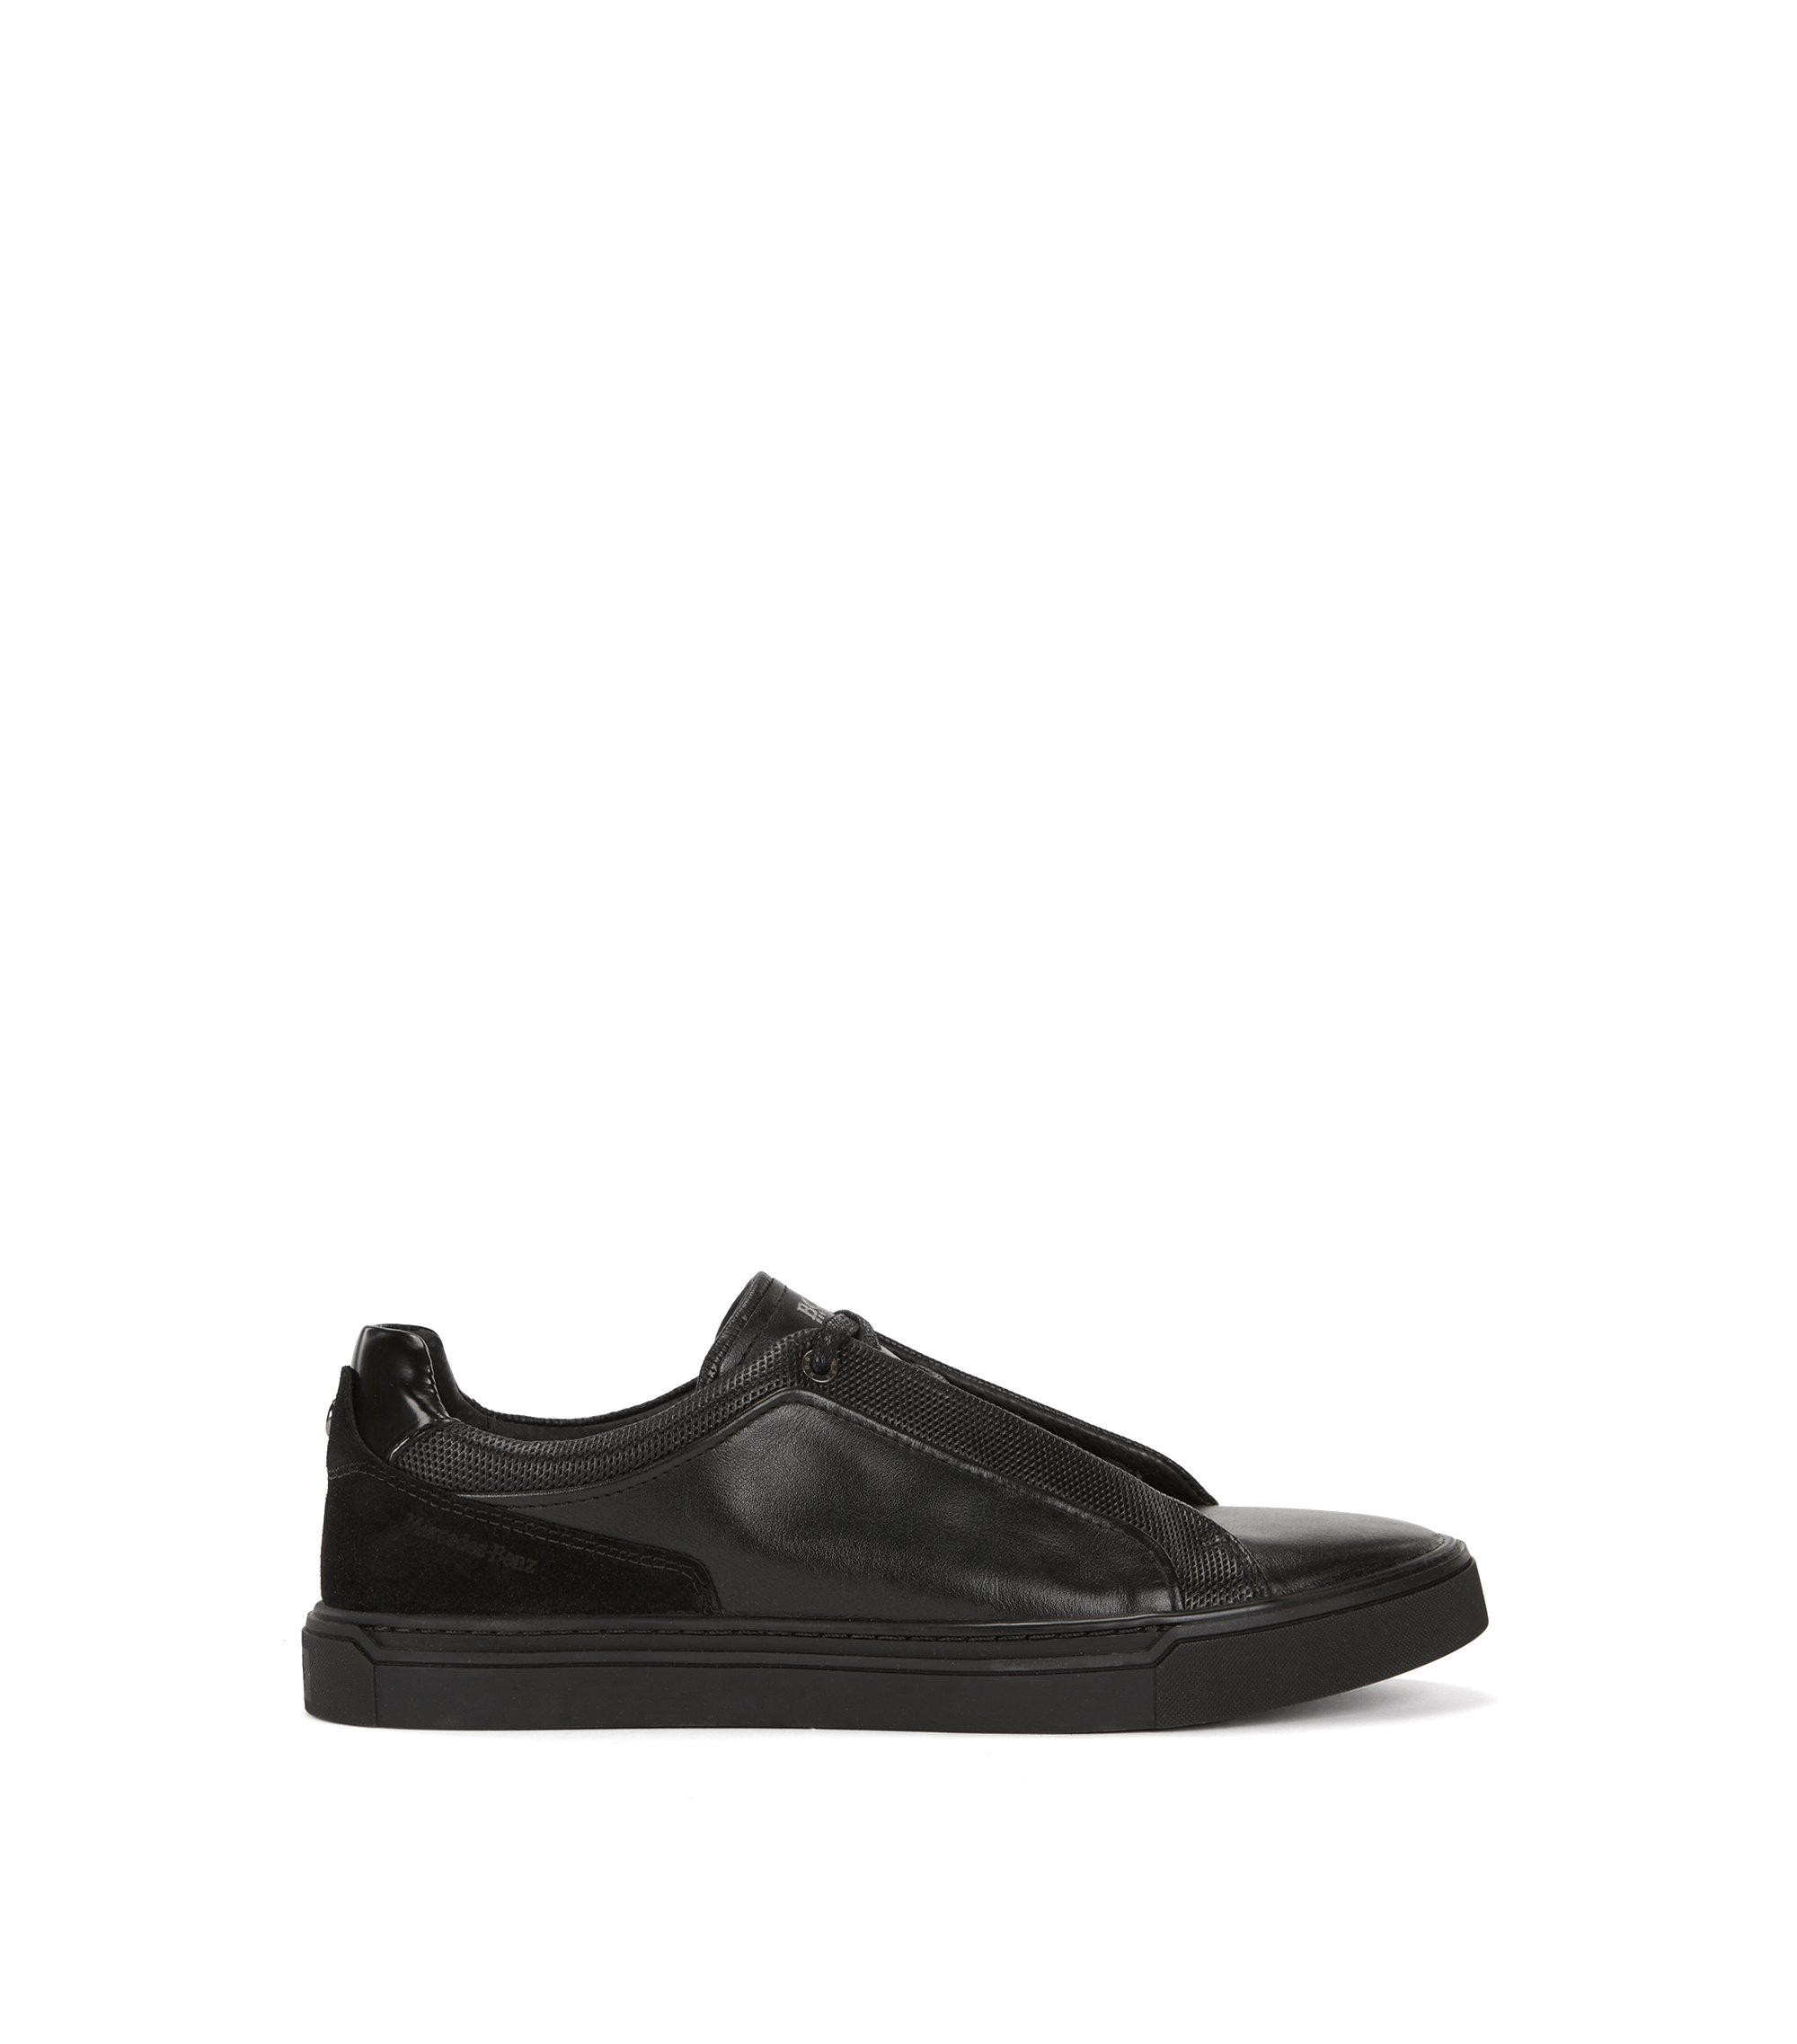 Mercedes-Benz sneakers in leather and suede, Black